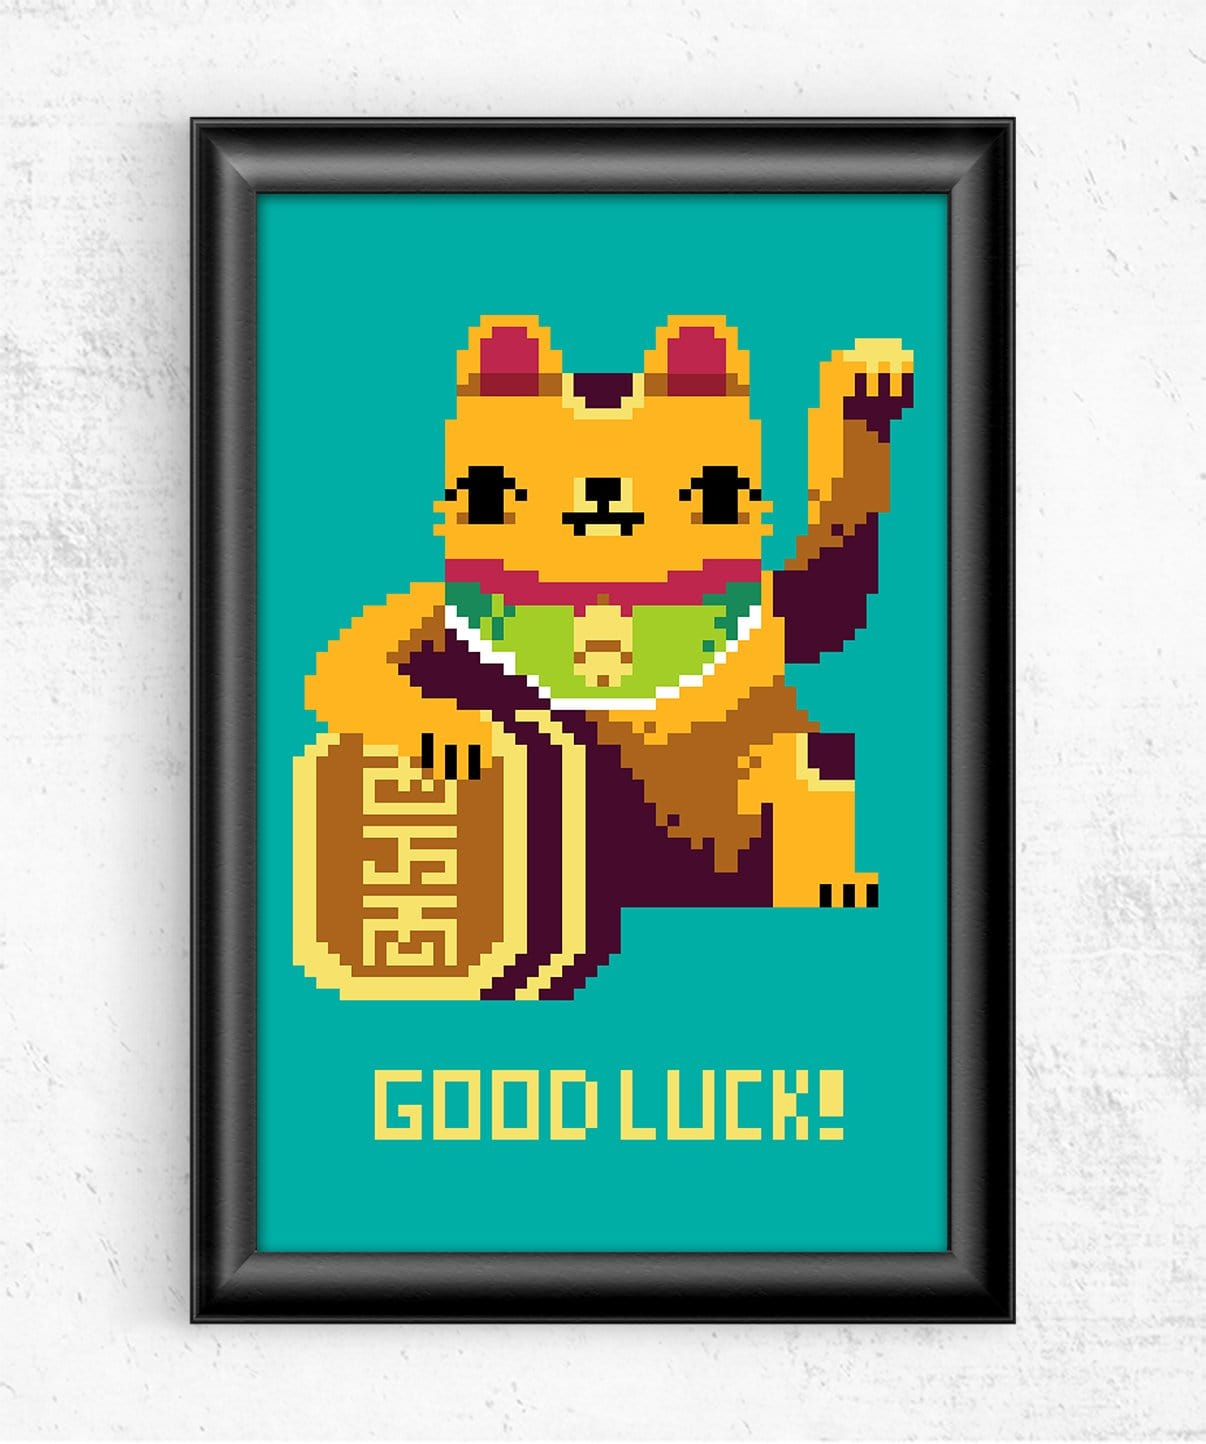 Good Luck Posters by Louis Roskosch - Pixel Empire